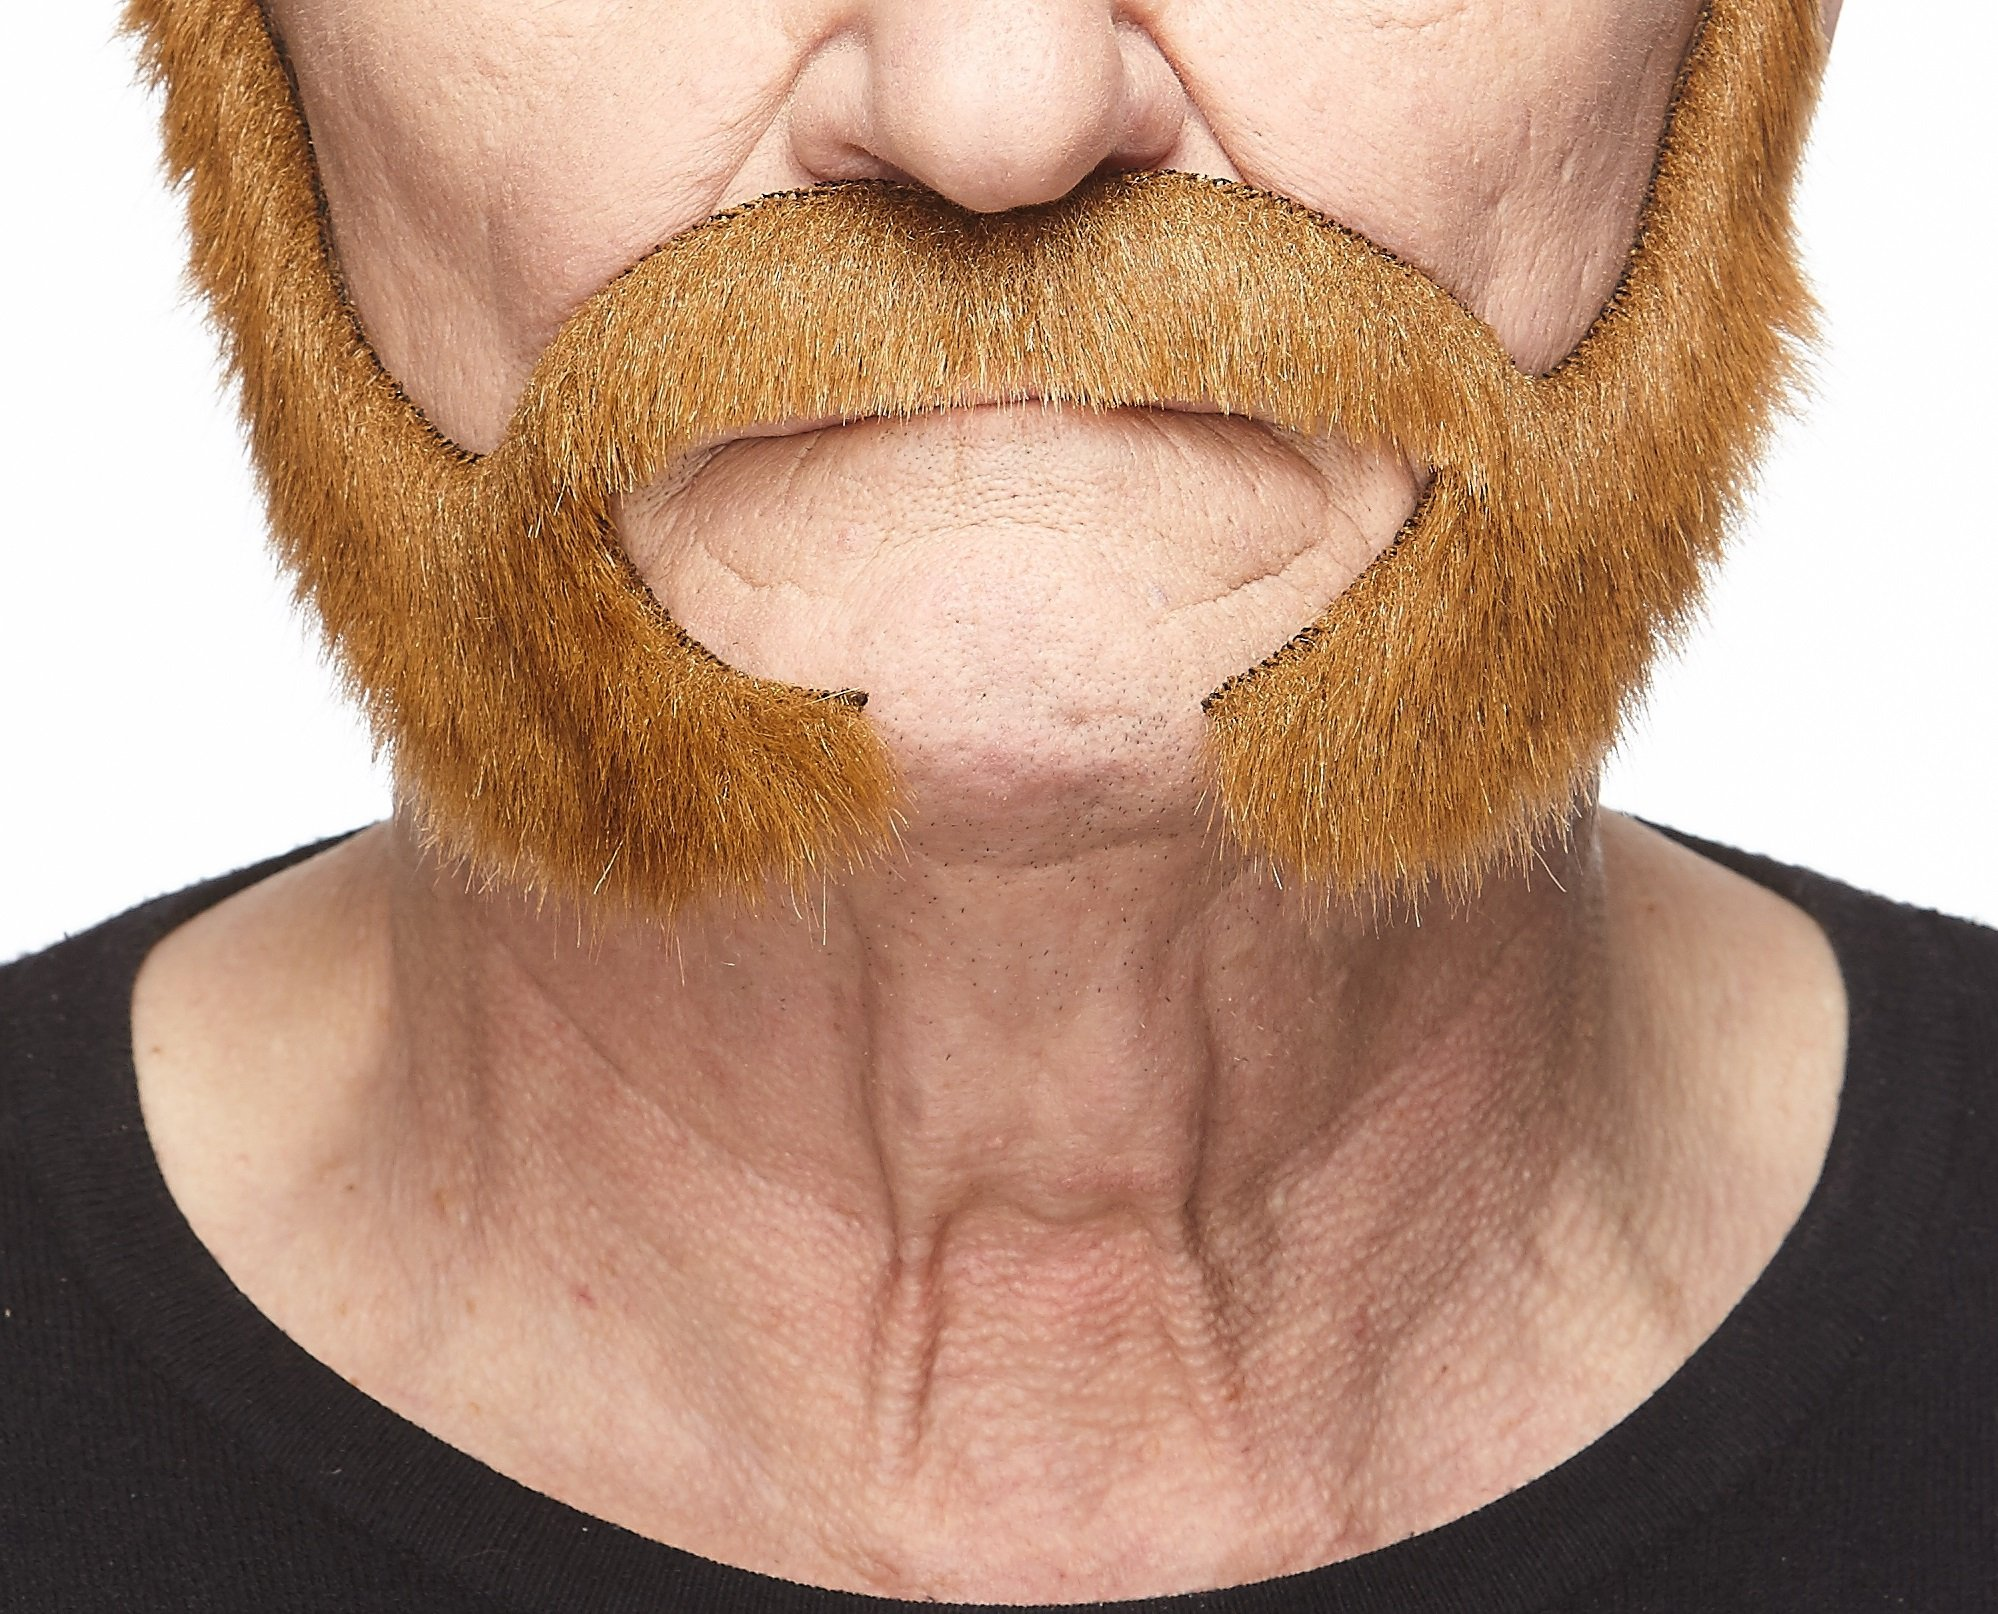 Mustaches Self Adhesive, Novelty, Pedal to The Metal Fake Beard, False Facial Hair, Costume Accessory for Adults, Chestnut Color